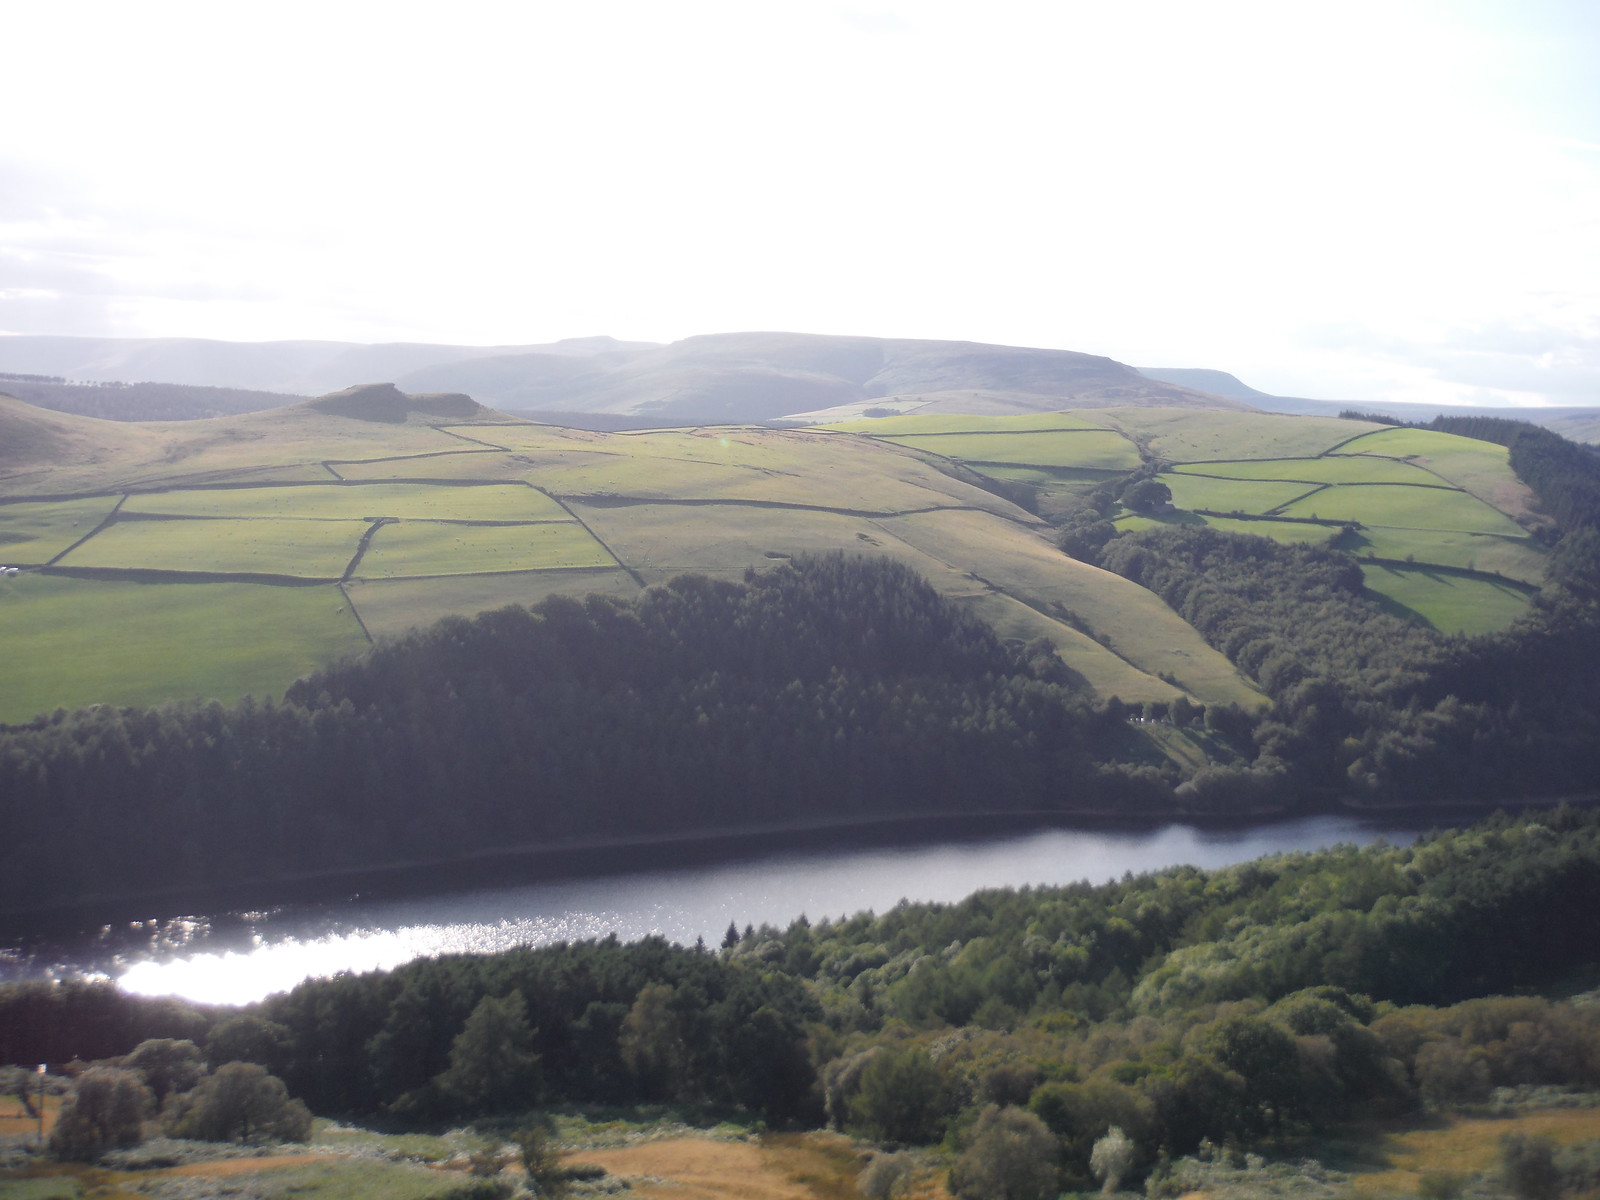 Evening View across Ladybower Reservoir and Crook Hill towards Kinder Scout, from Six-Way Junction SWC Walk 348 - Ladybower Inn Circular (via Derwent Edges and Strines)